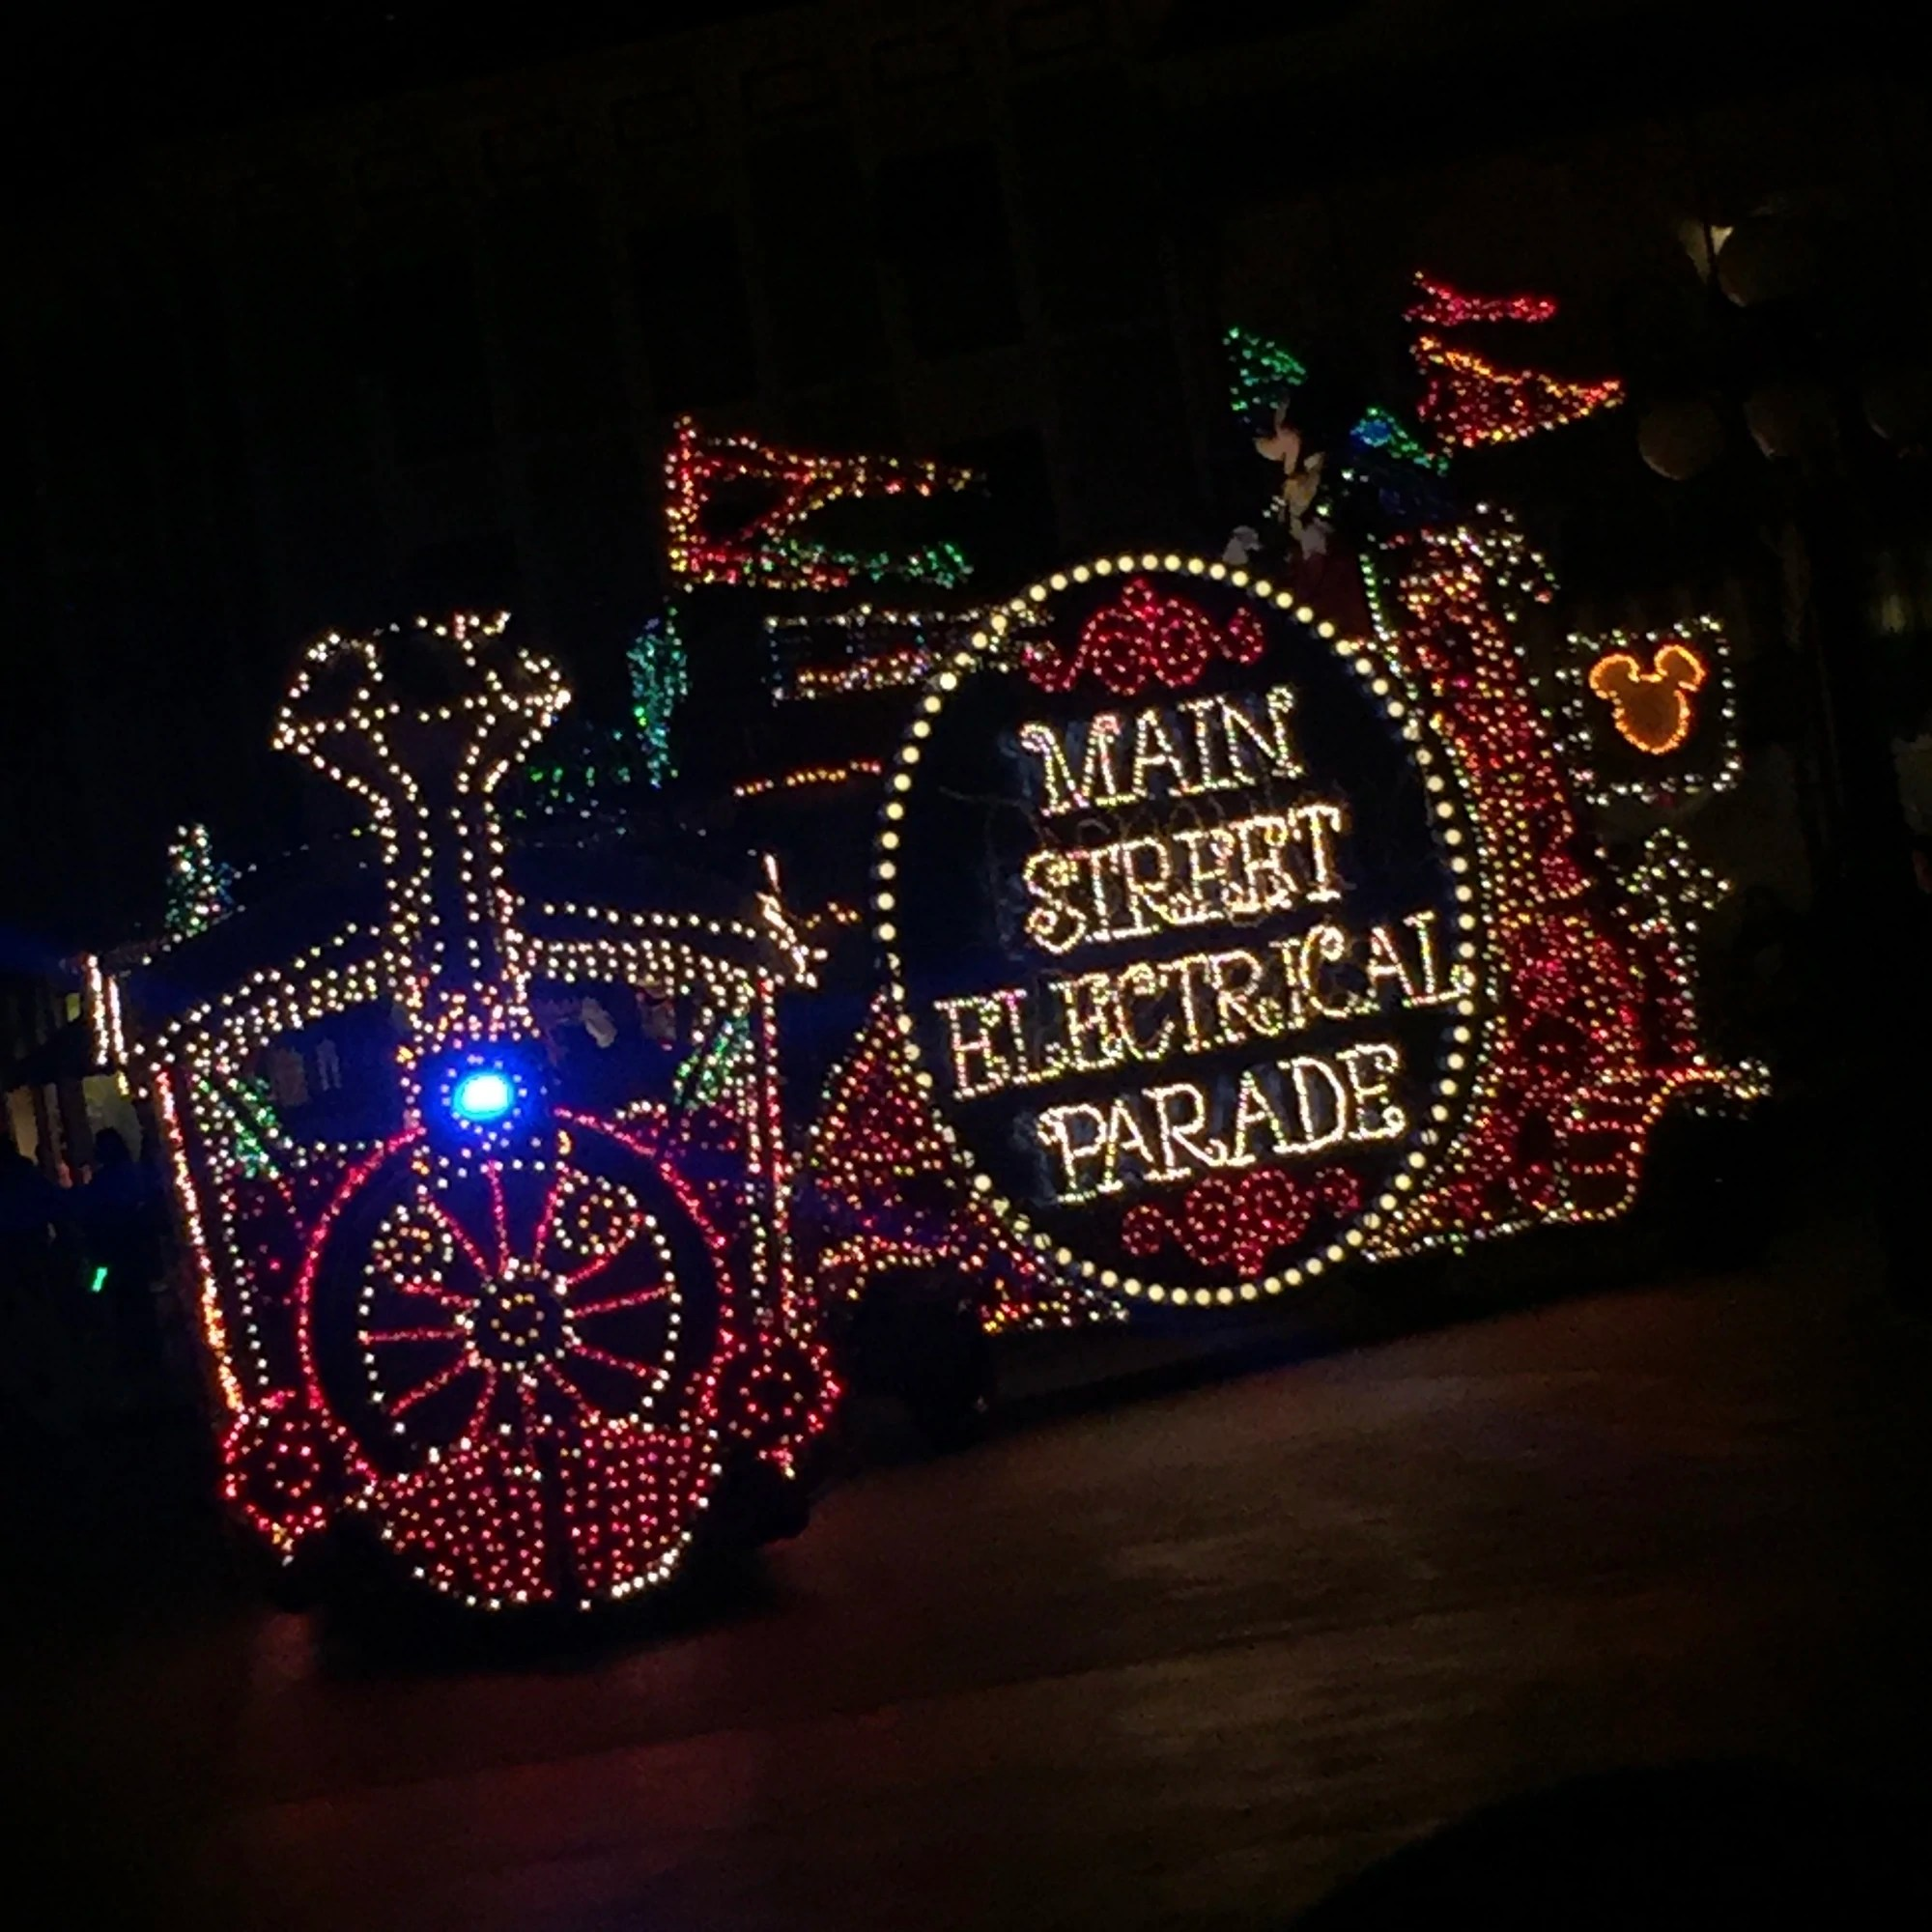 Main Street Electrical Parade Disney Wiki Fandom